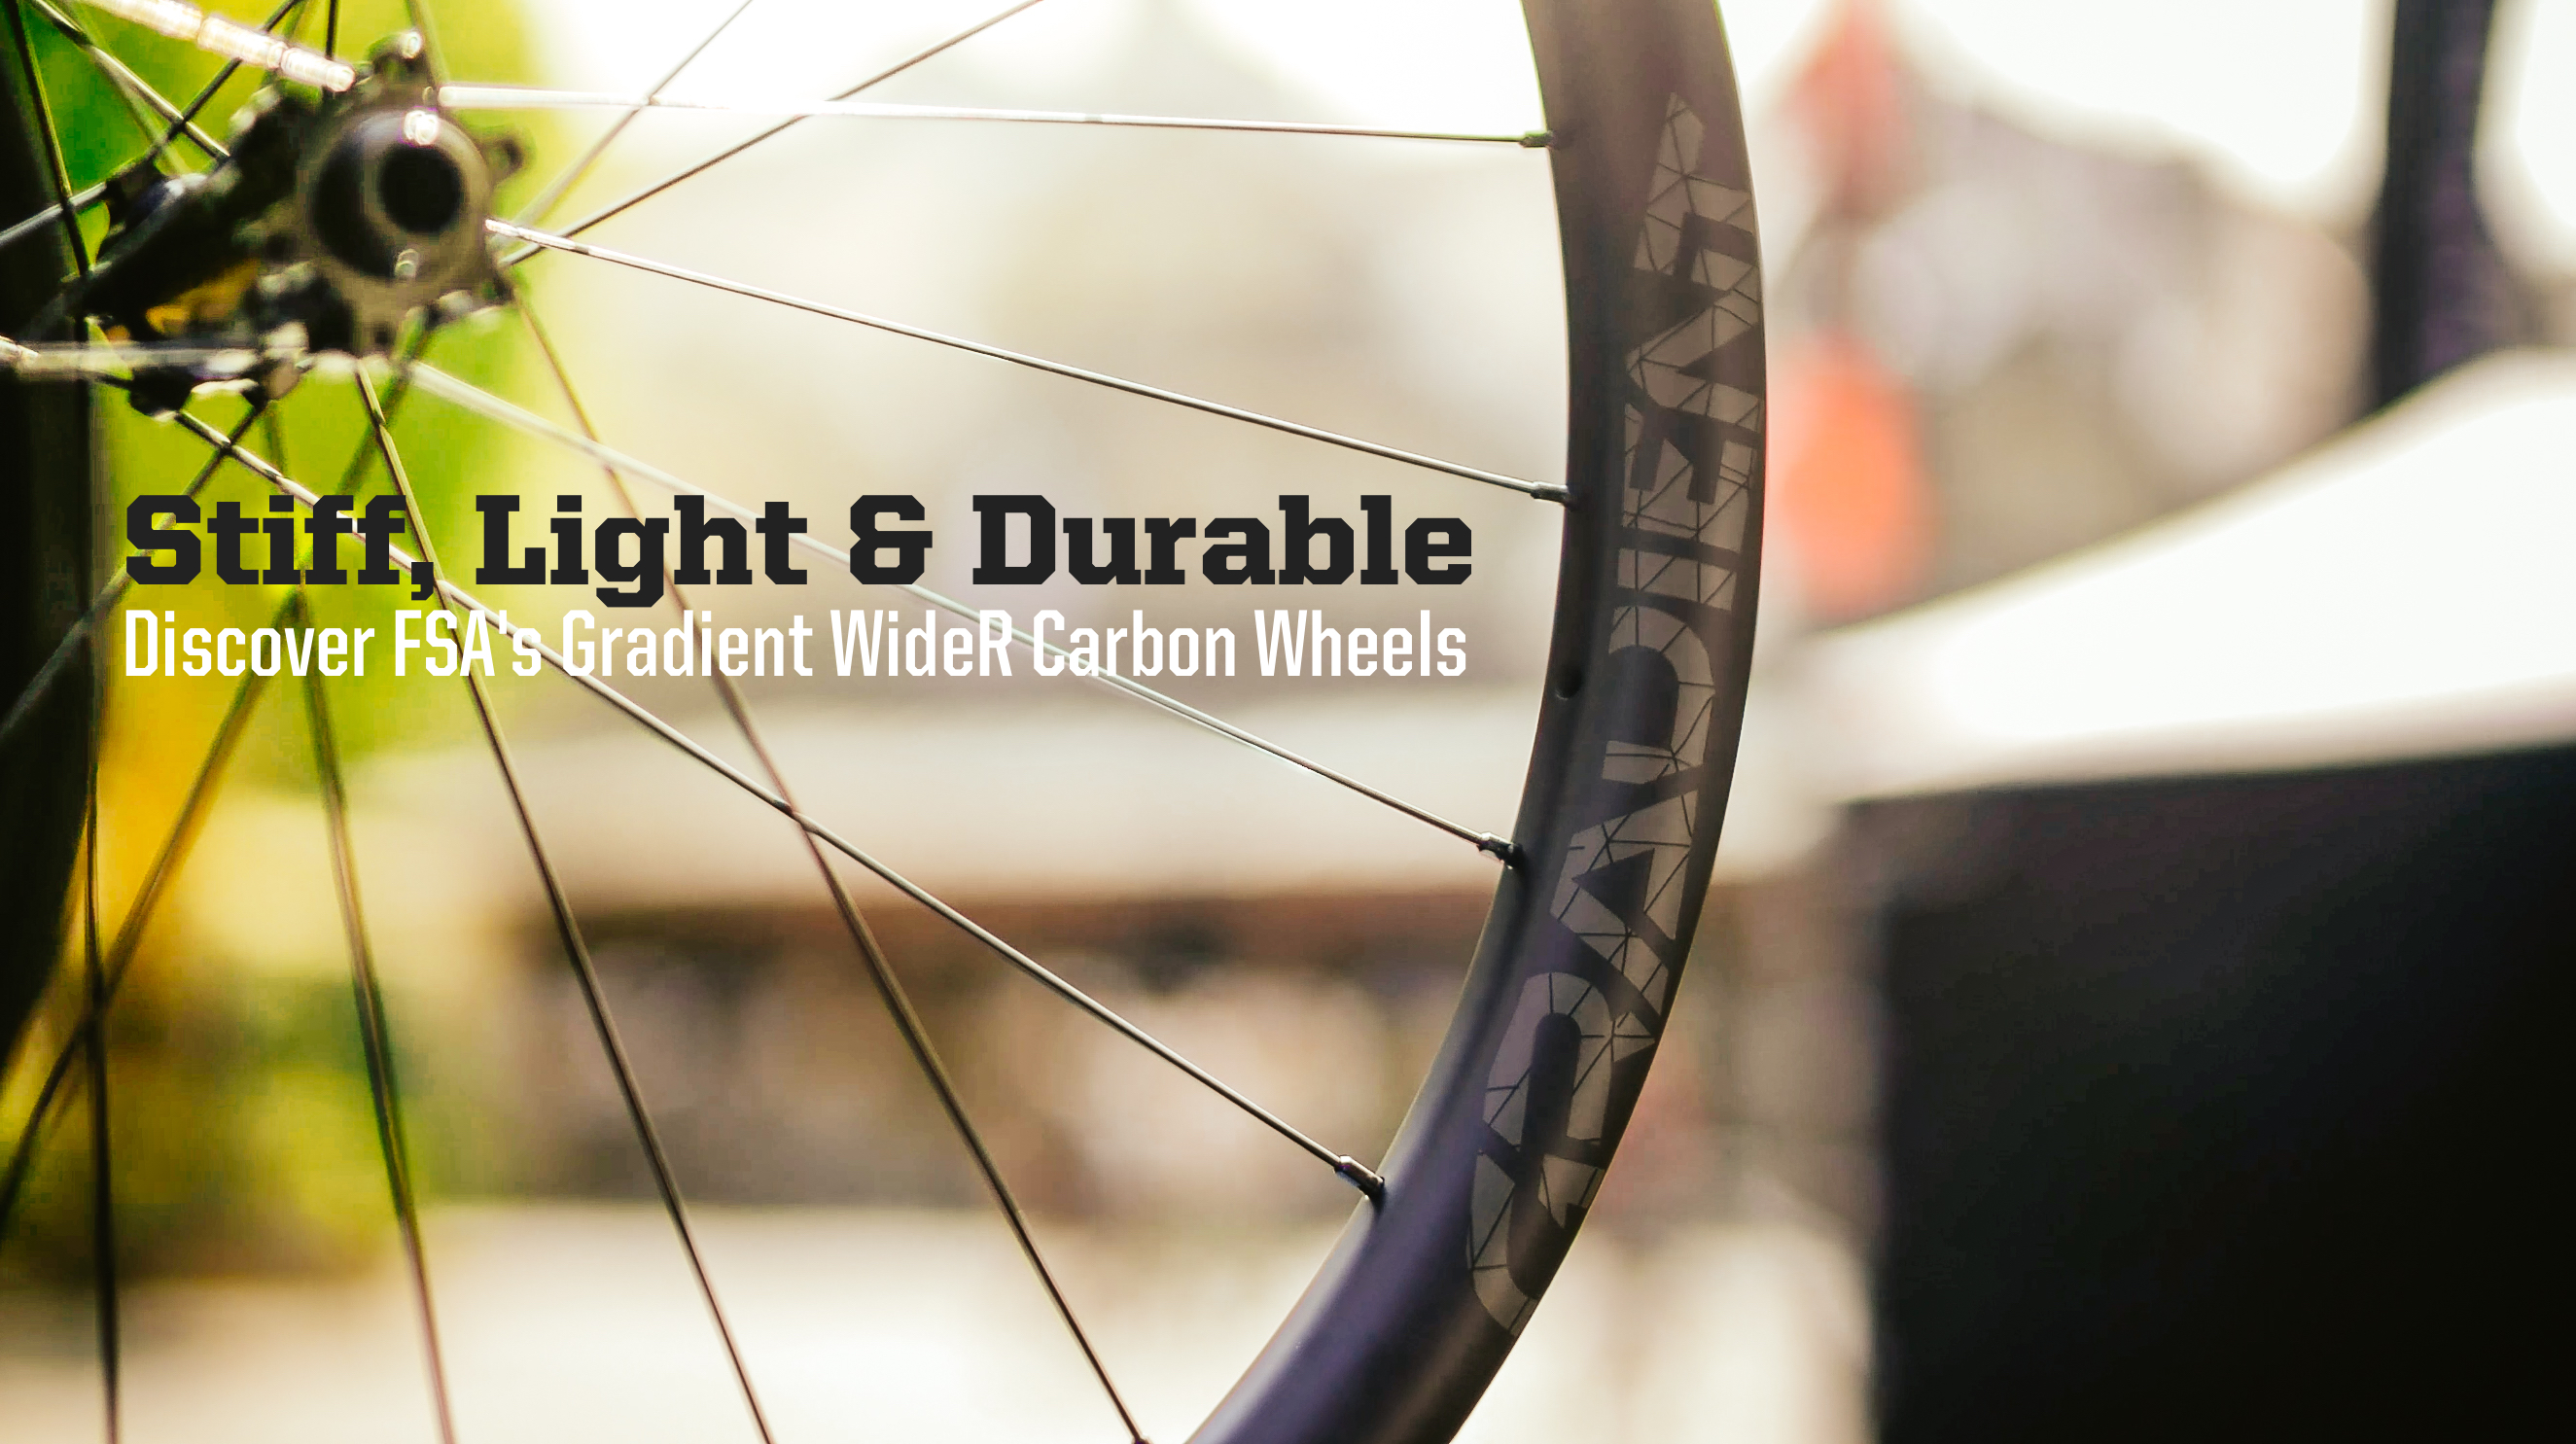 Stiff, Light and Durable - Discover FSA's Gradient WideR Carbon Wheels